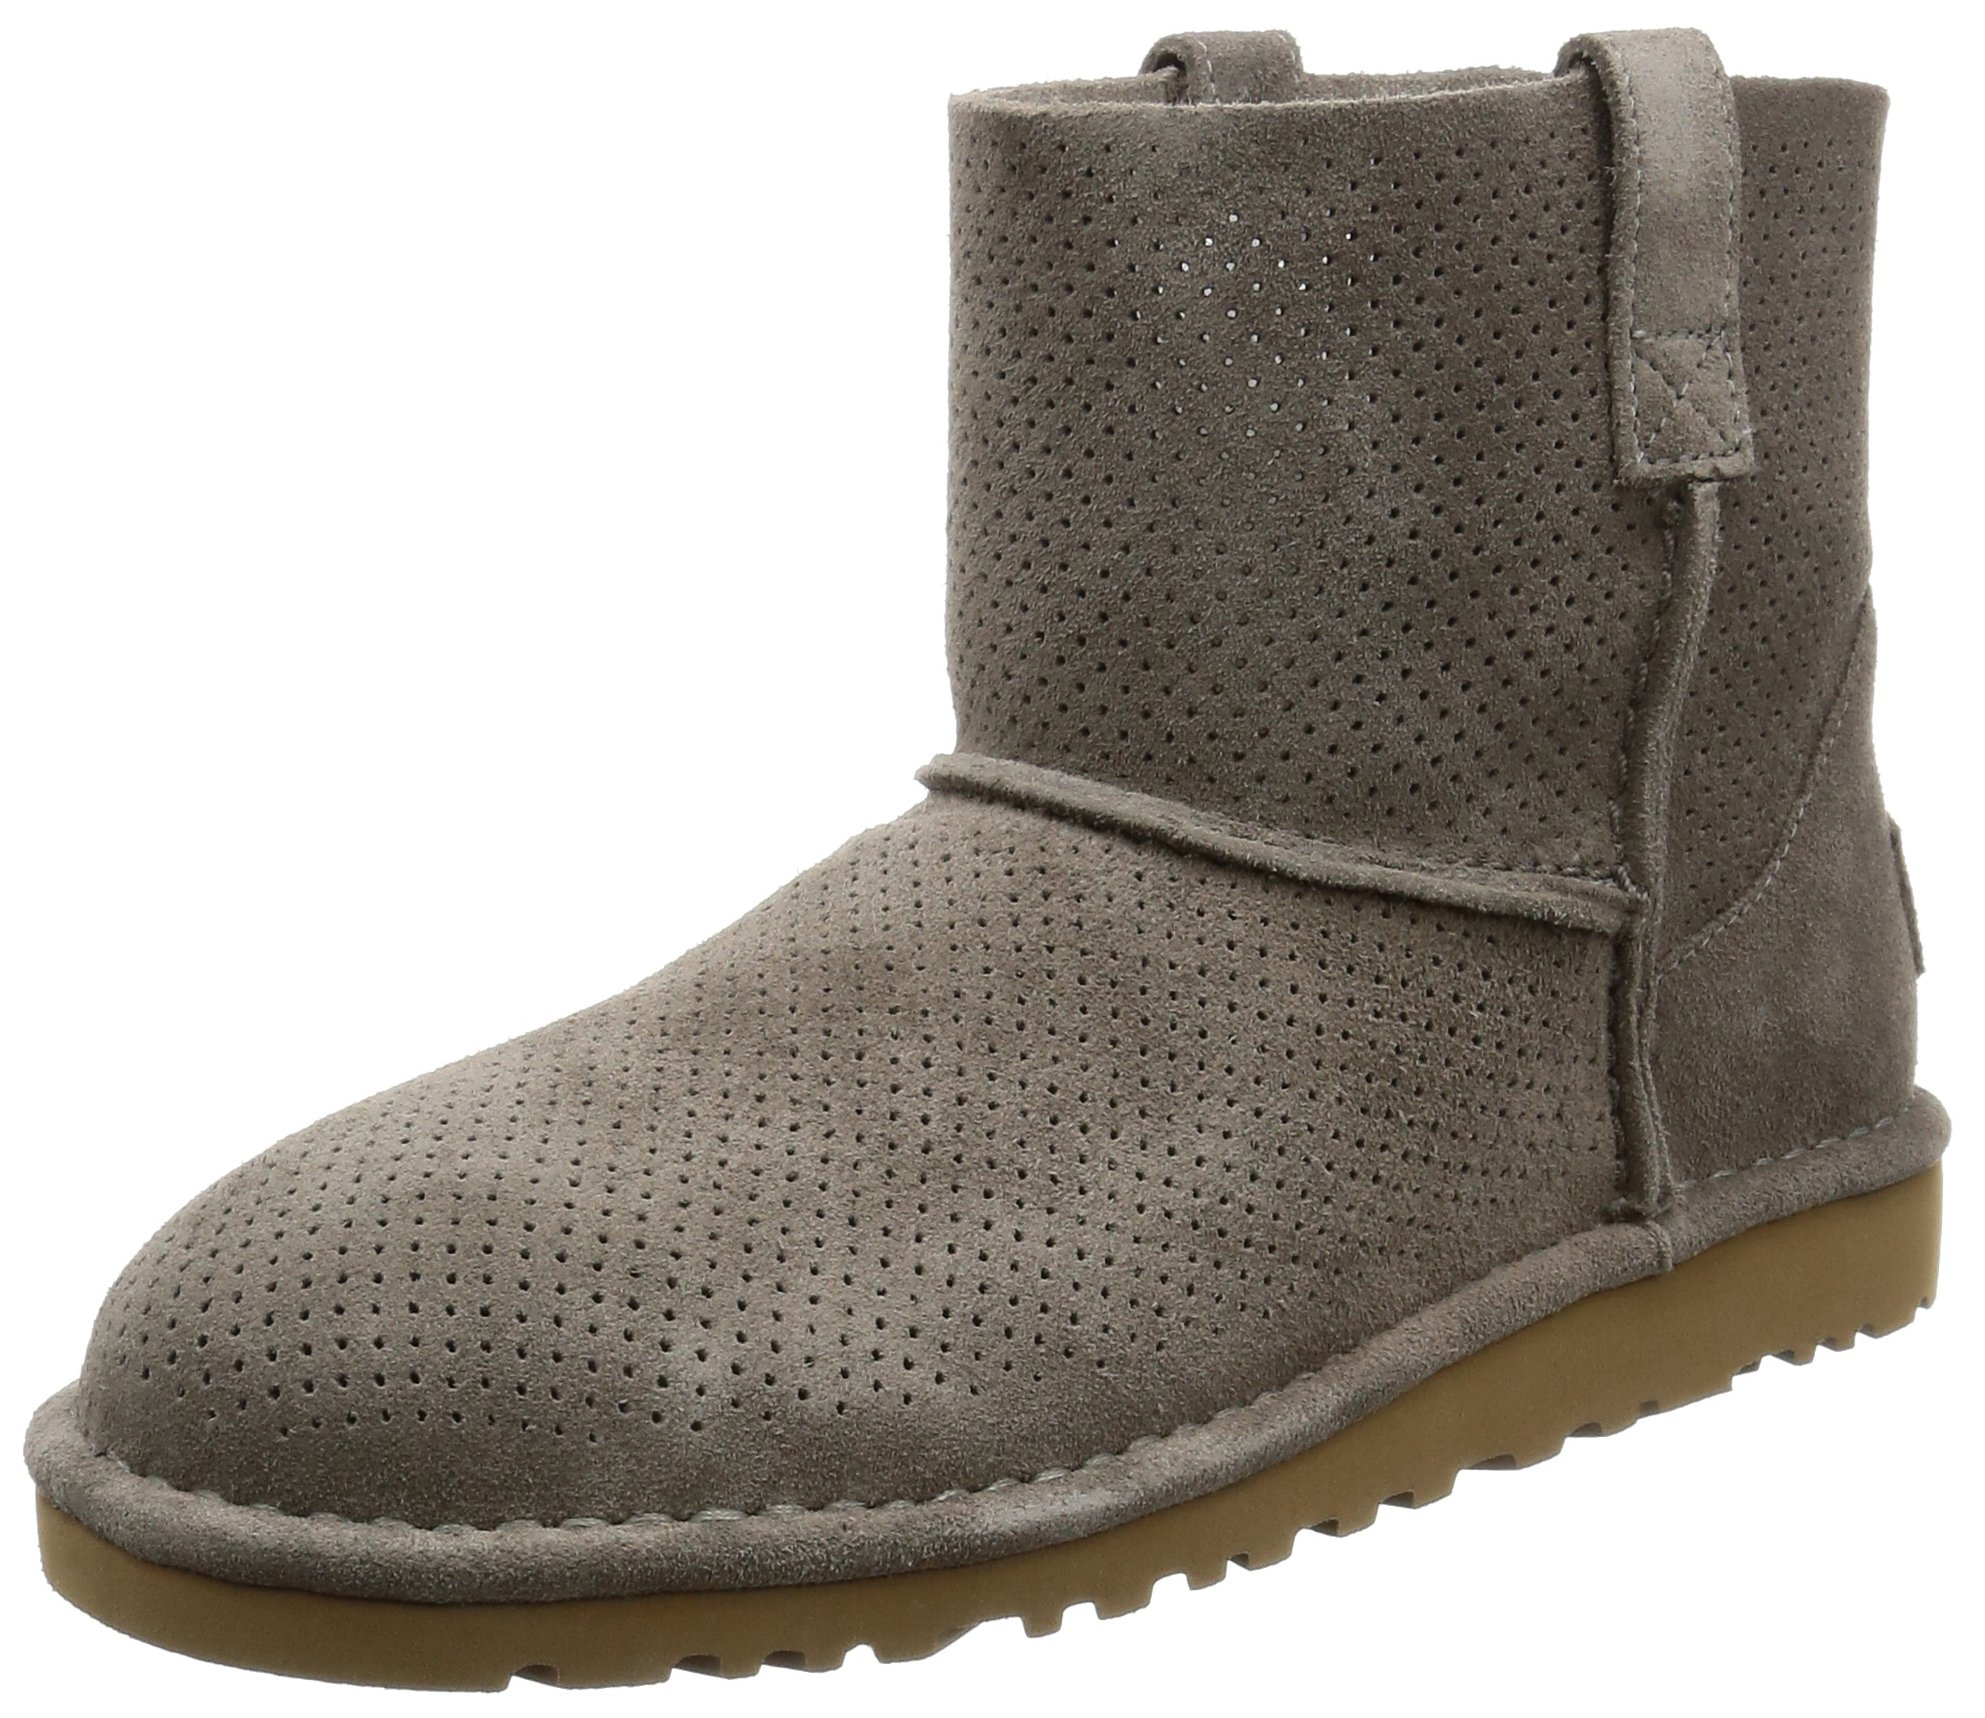 UGG Women's Classic Unlined Mini Perforated Spring Boot, Mole, 11 B US